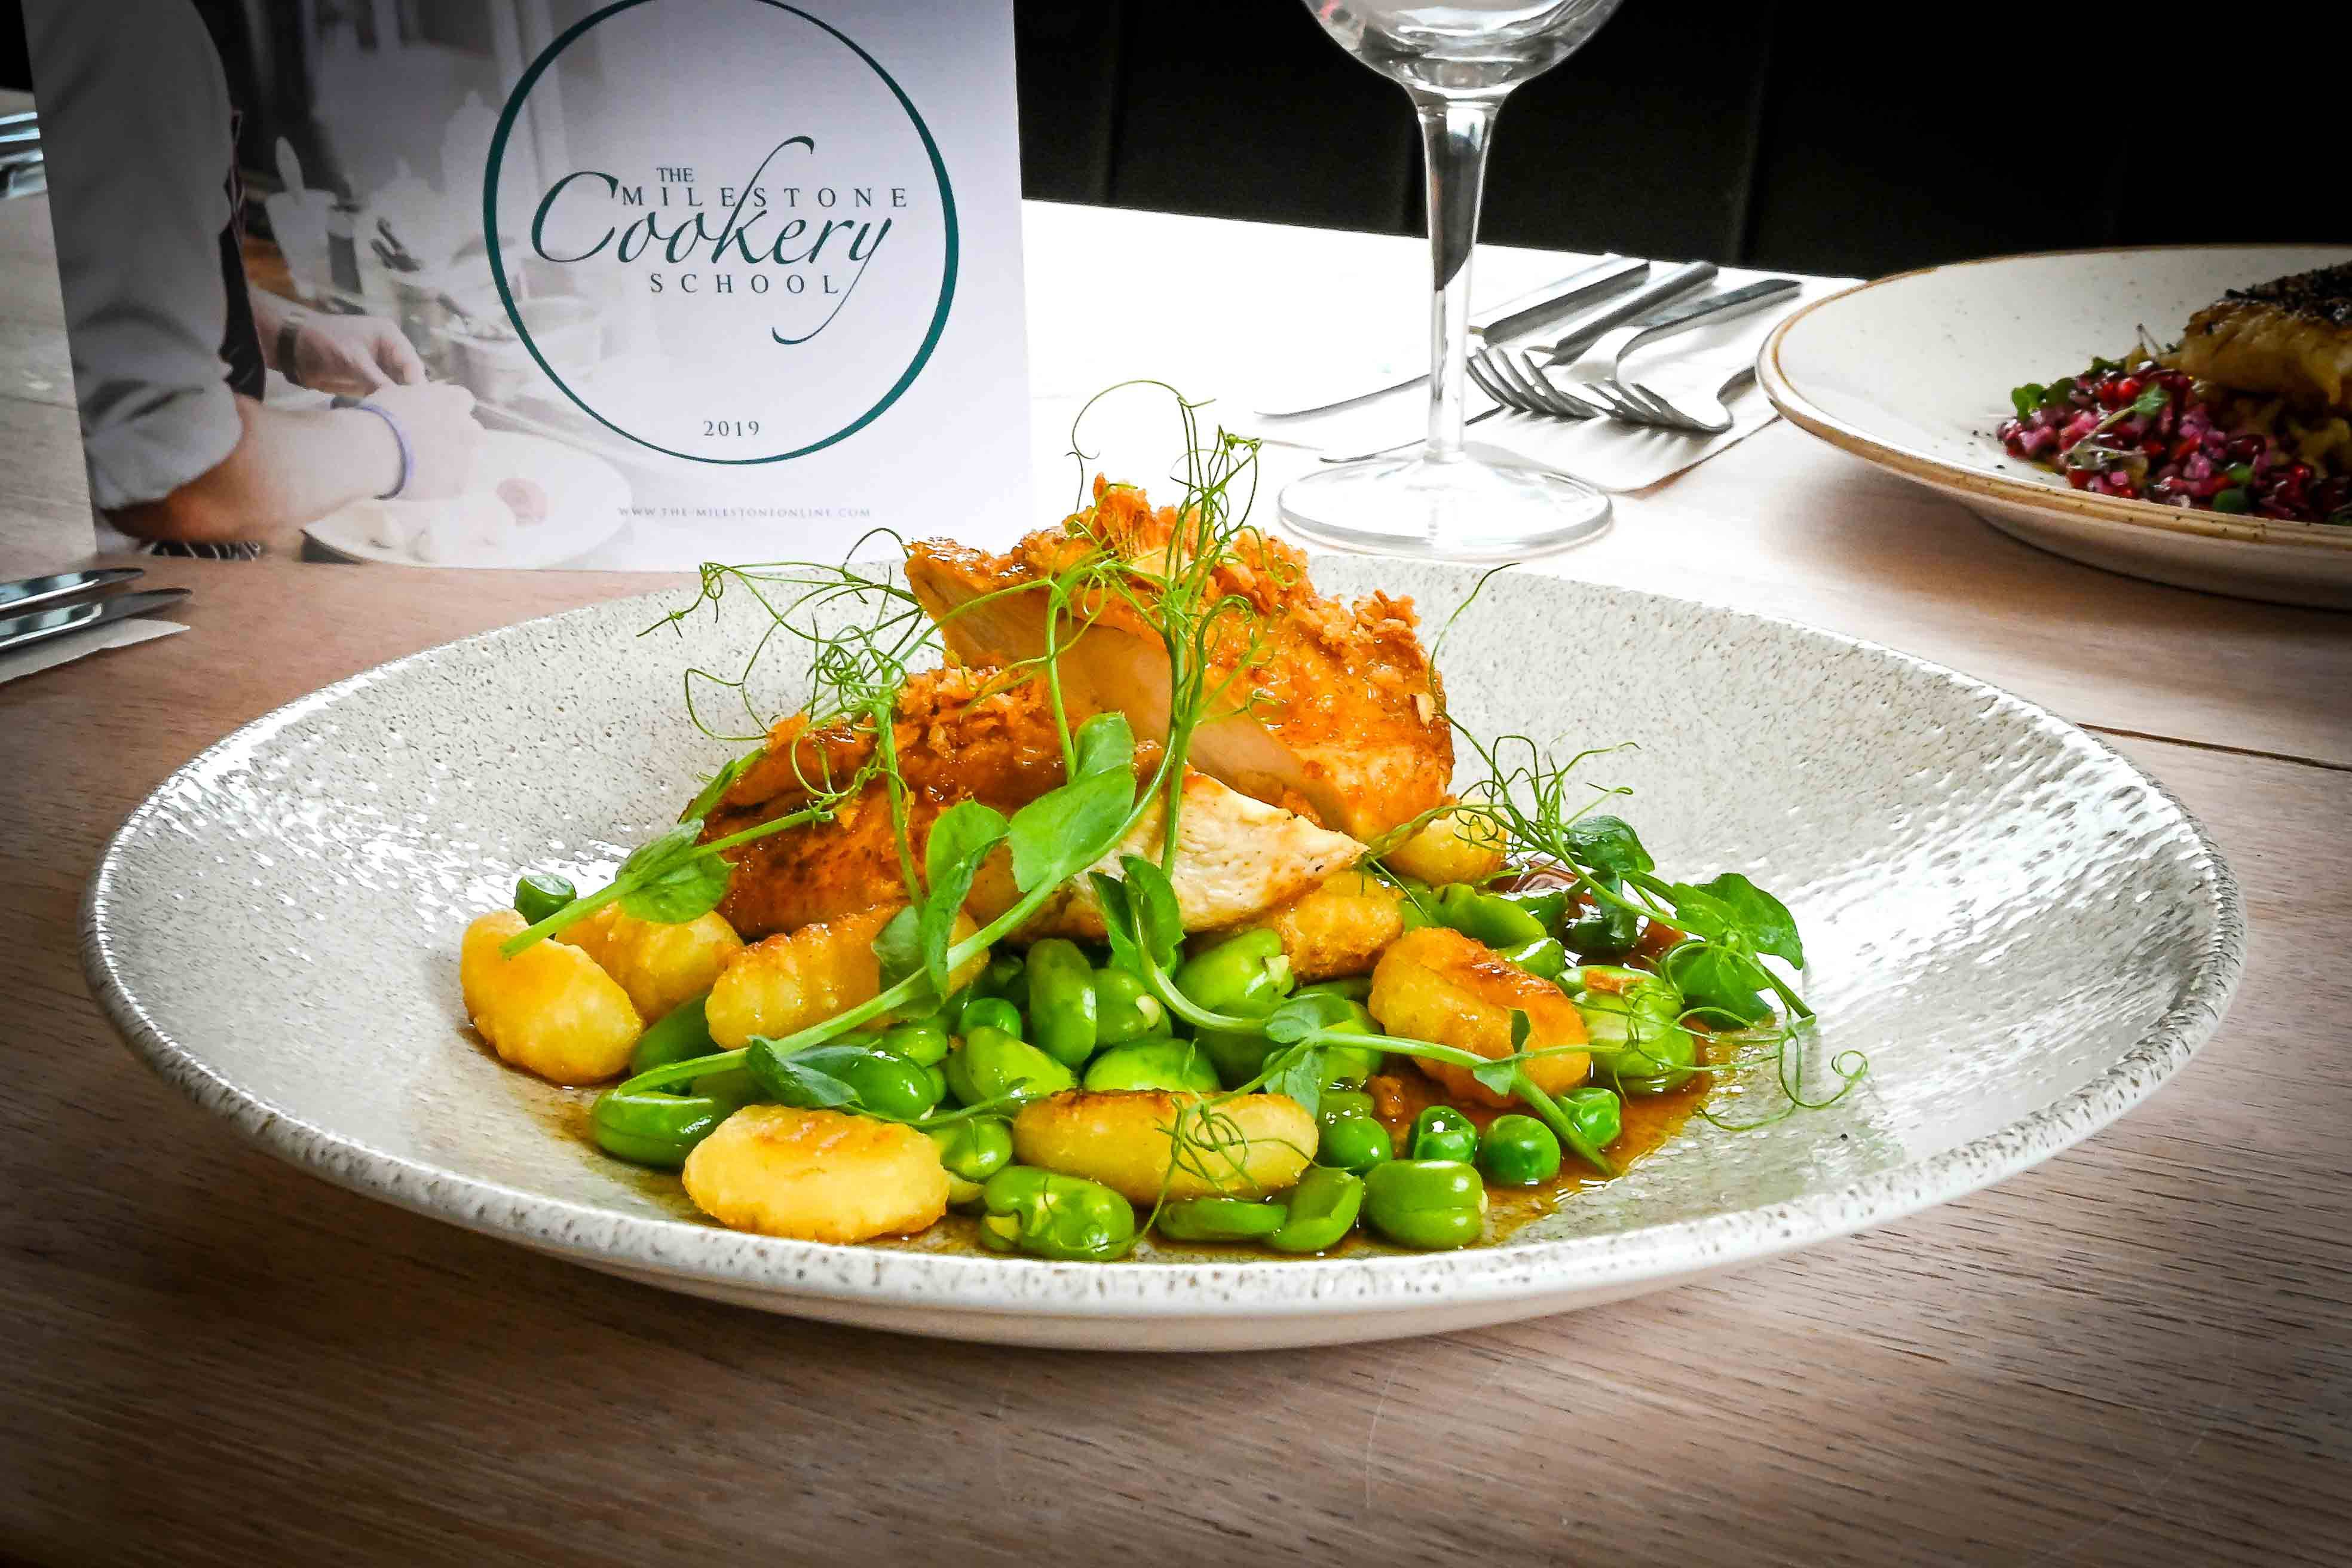 The Milestone Sheffield Chicken breast with gnocchi and broad beans